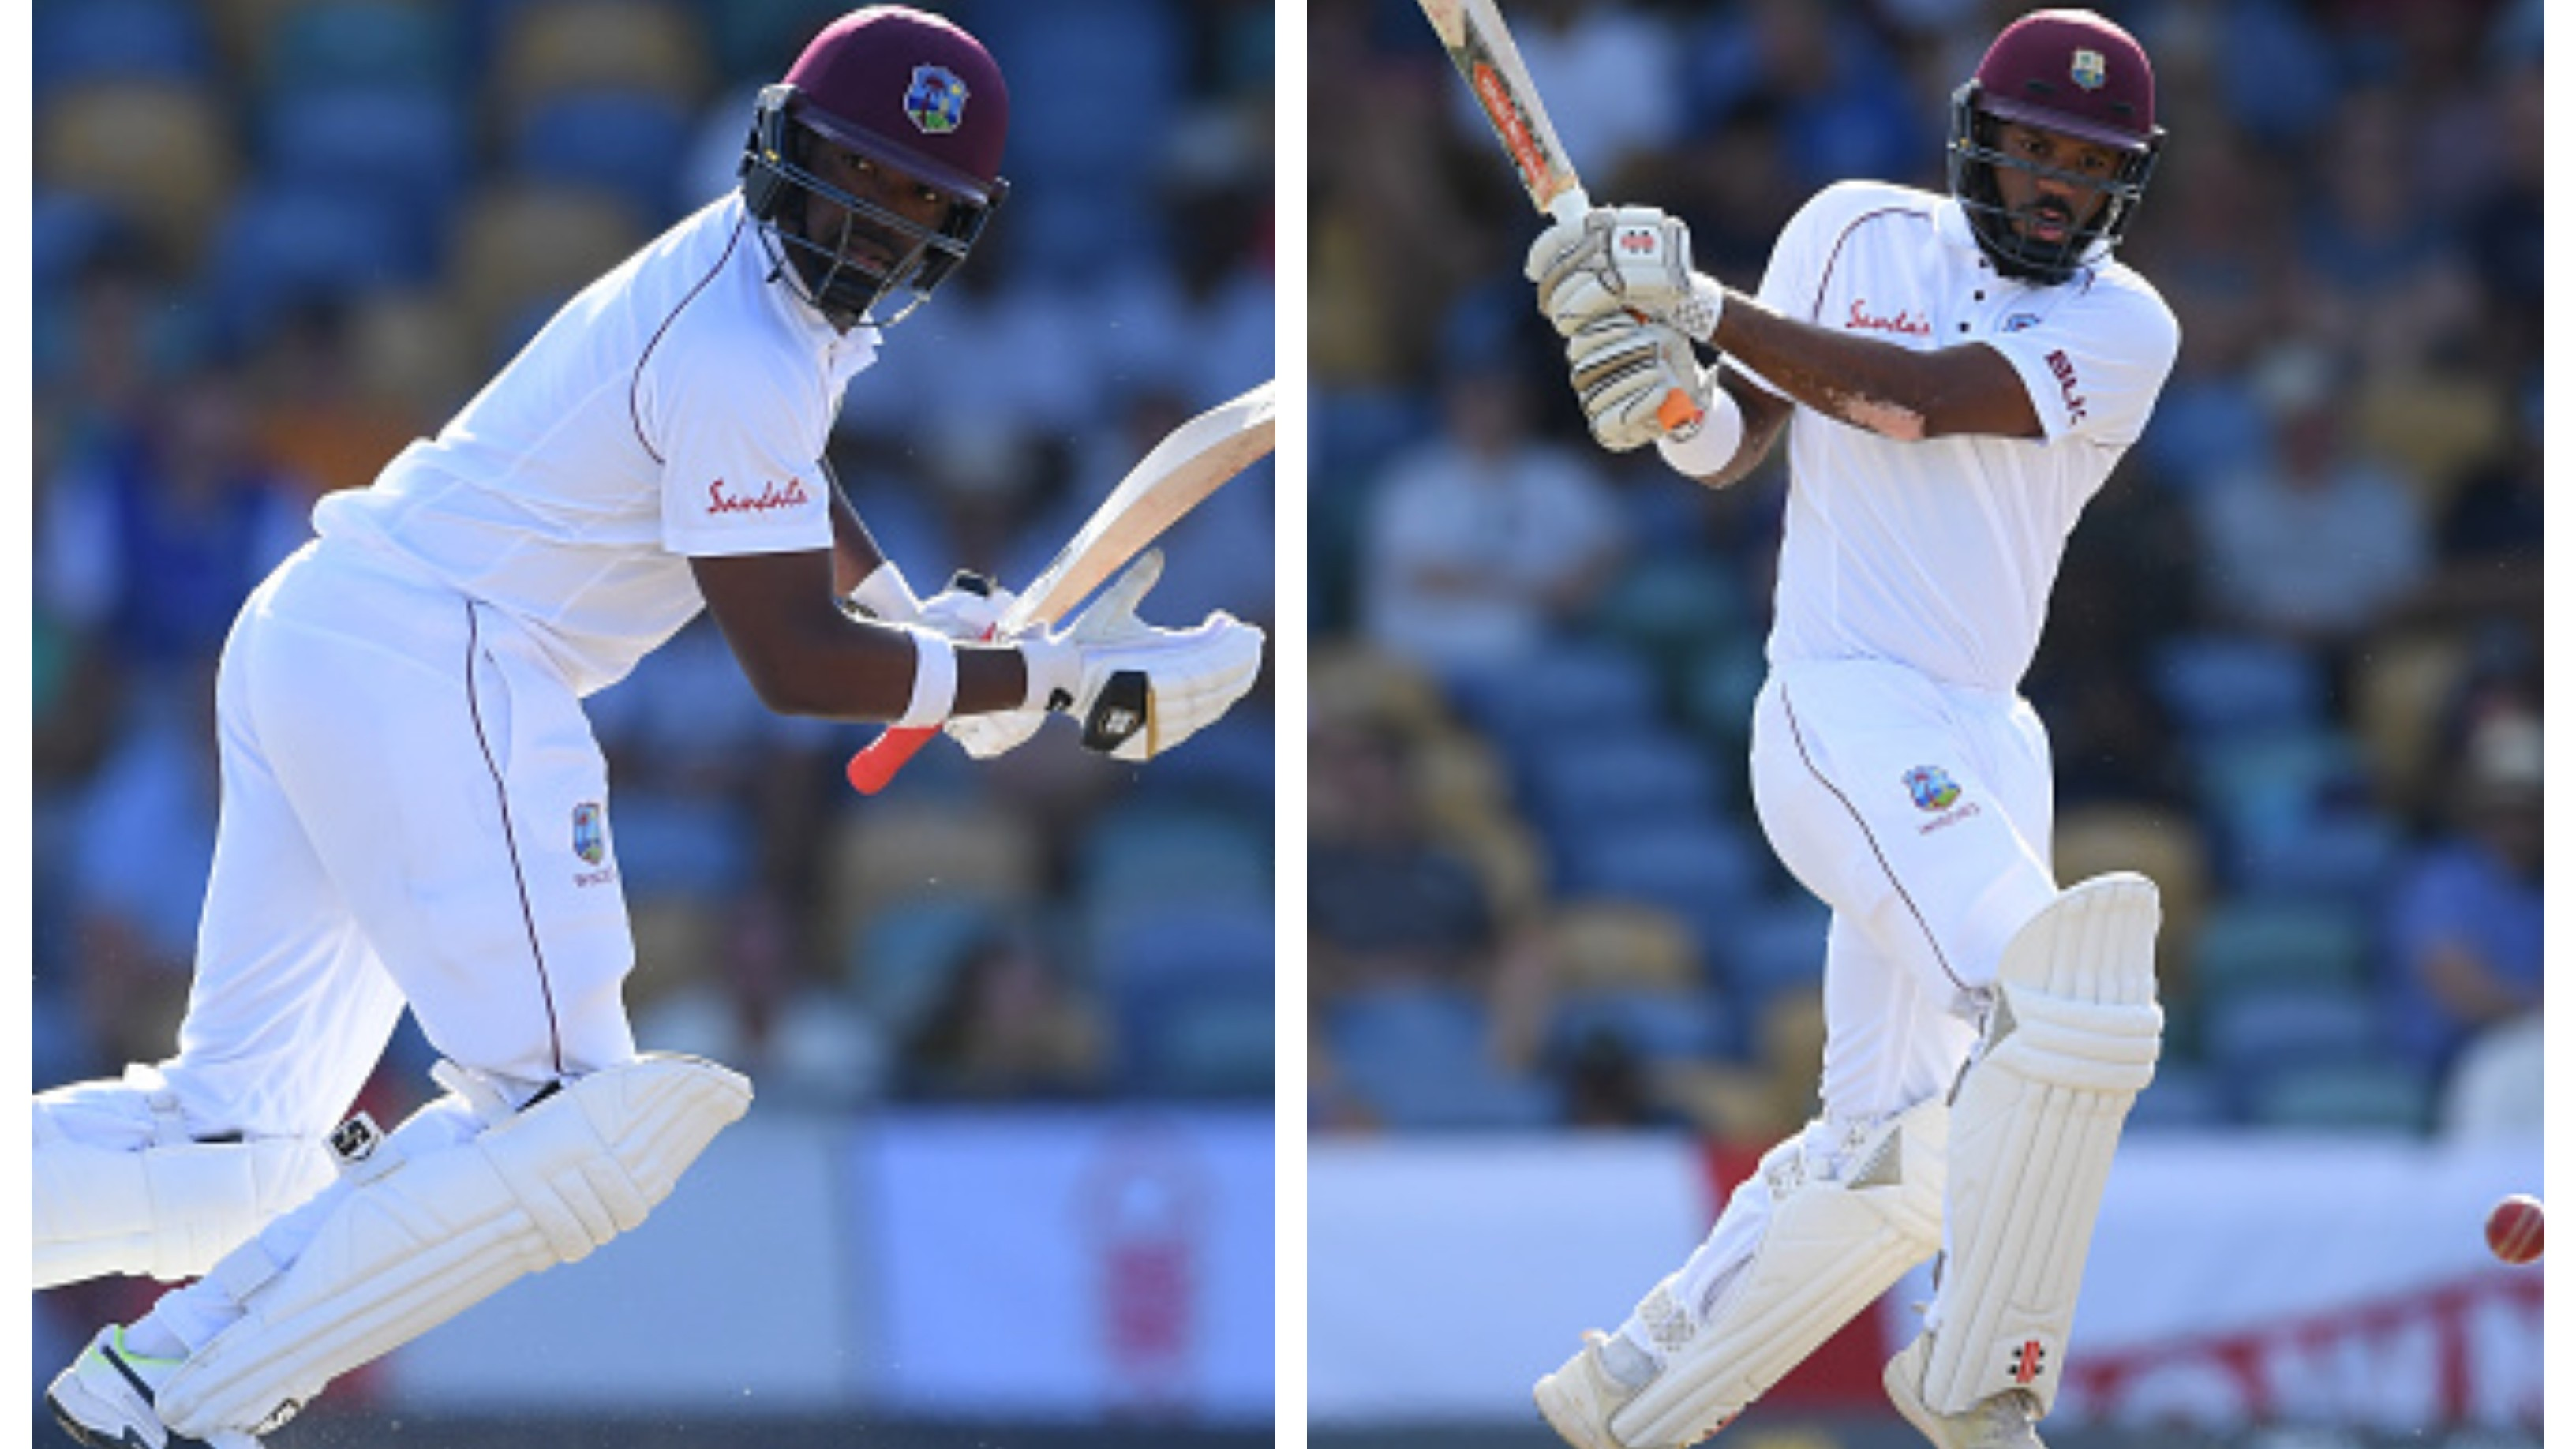 WI v IND 2019: Darren Bravo, John Campbell picked in West Indies 'A' squad for warm-up tie against India